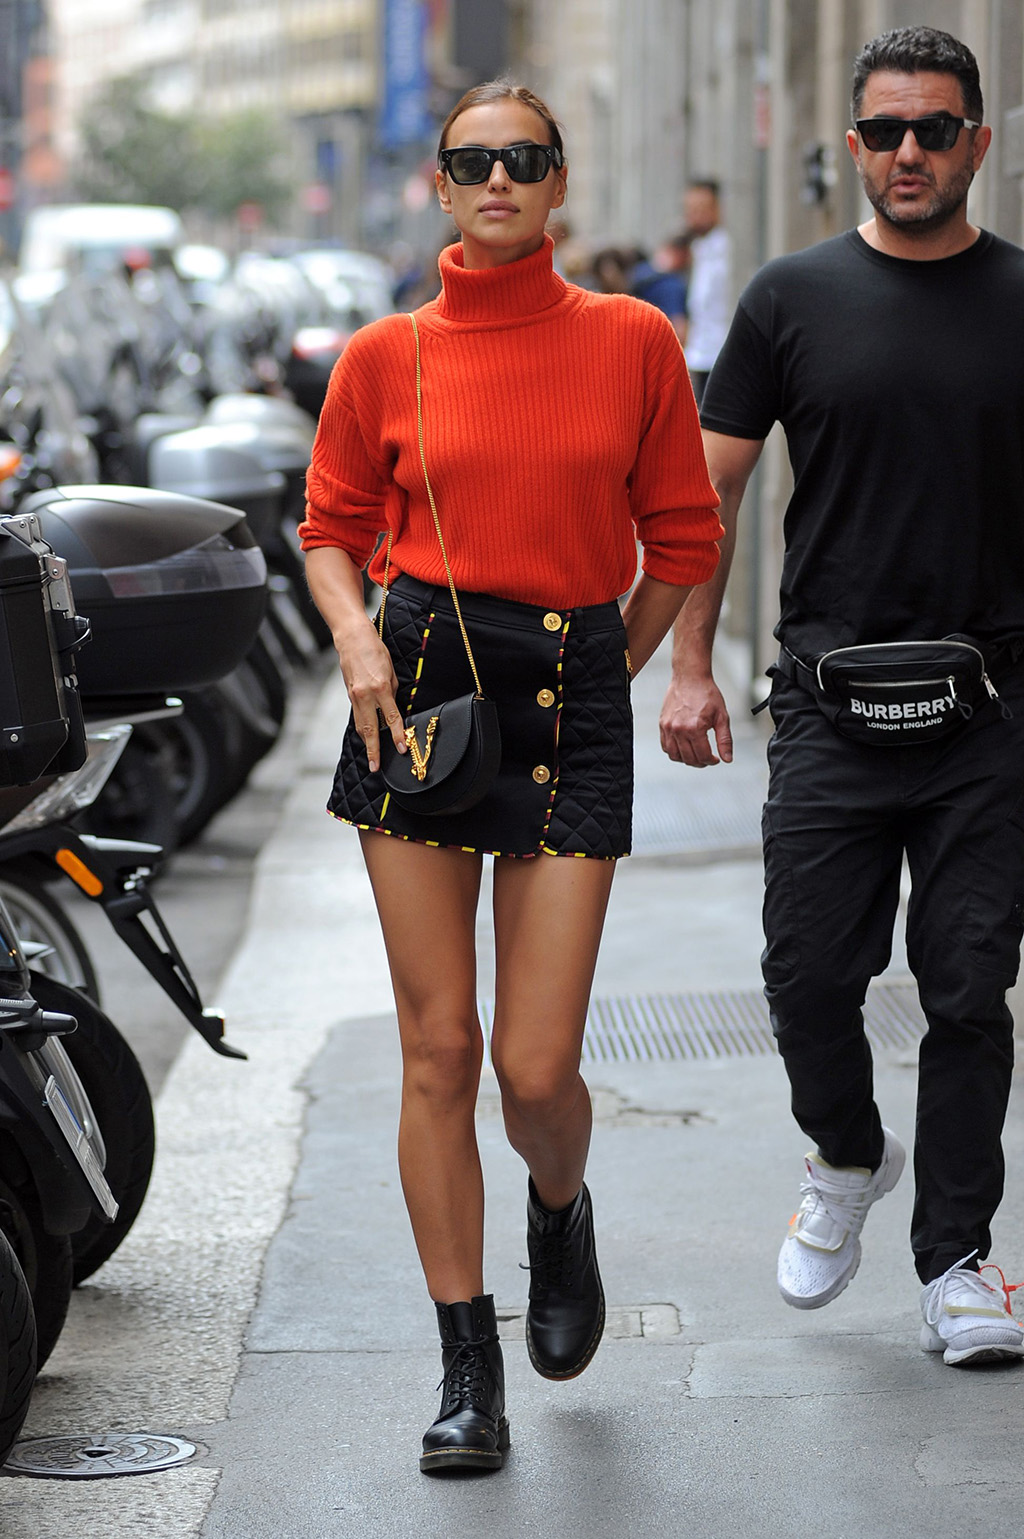 Irina Shayk, Versace outfit, dr. Martens boots, legs, goes shopping at the Bottega Veneta boutique on Via Monte NapoleoneIrina Shayk out and about, Milan Fashion Week, Italy - 19 Sep 2019Wearing Versace